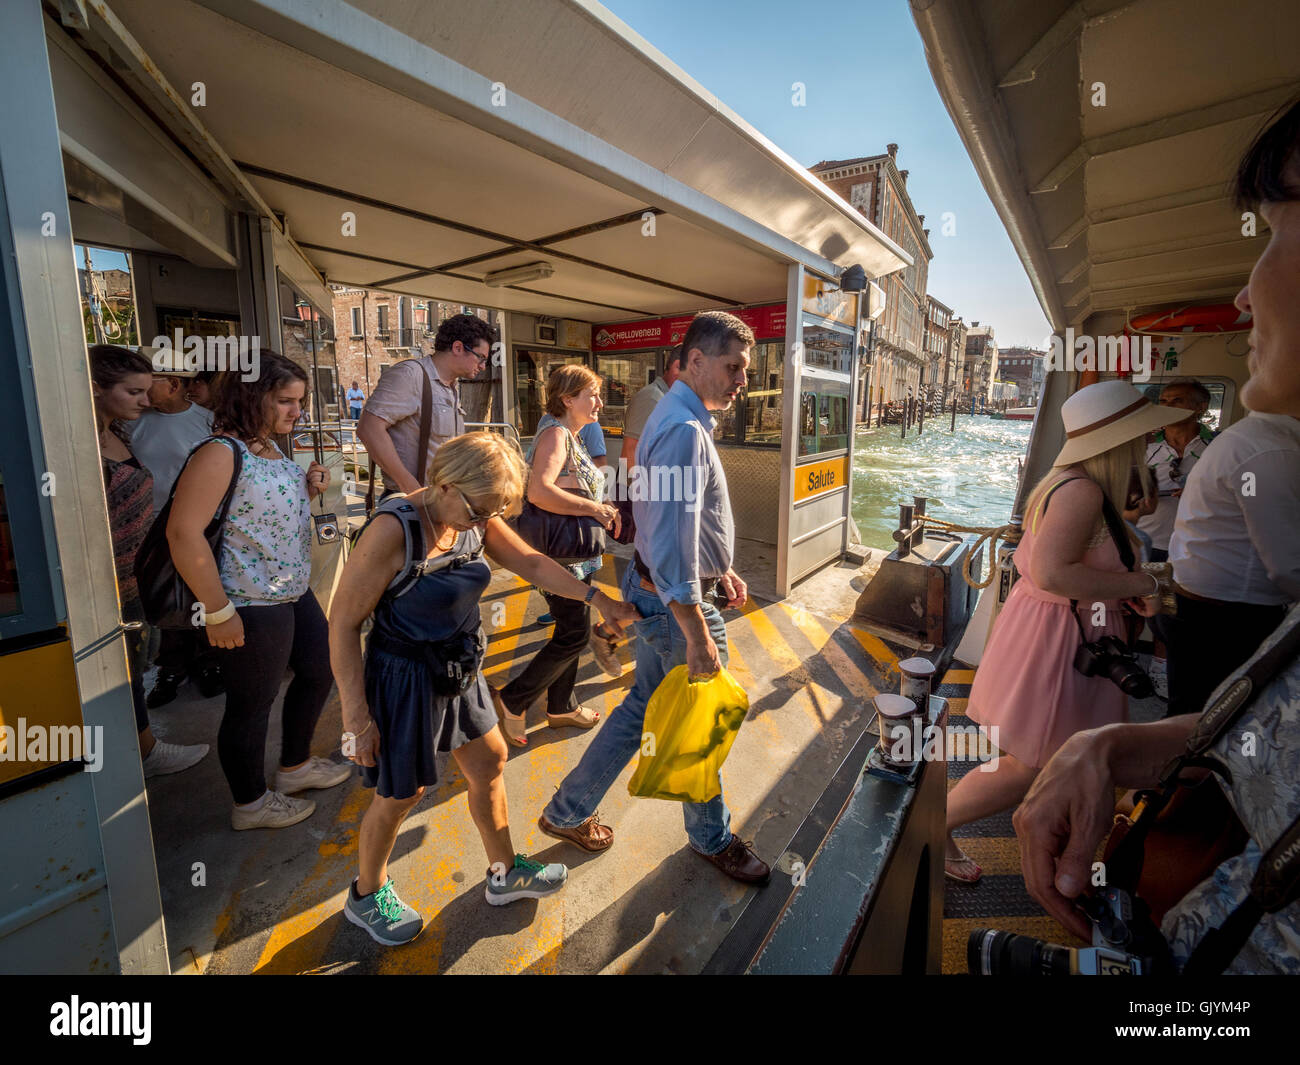 Passengers boarding the water bus or vaporetto, on the Grand Canal in Venice, Italy. - Stock Image